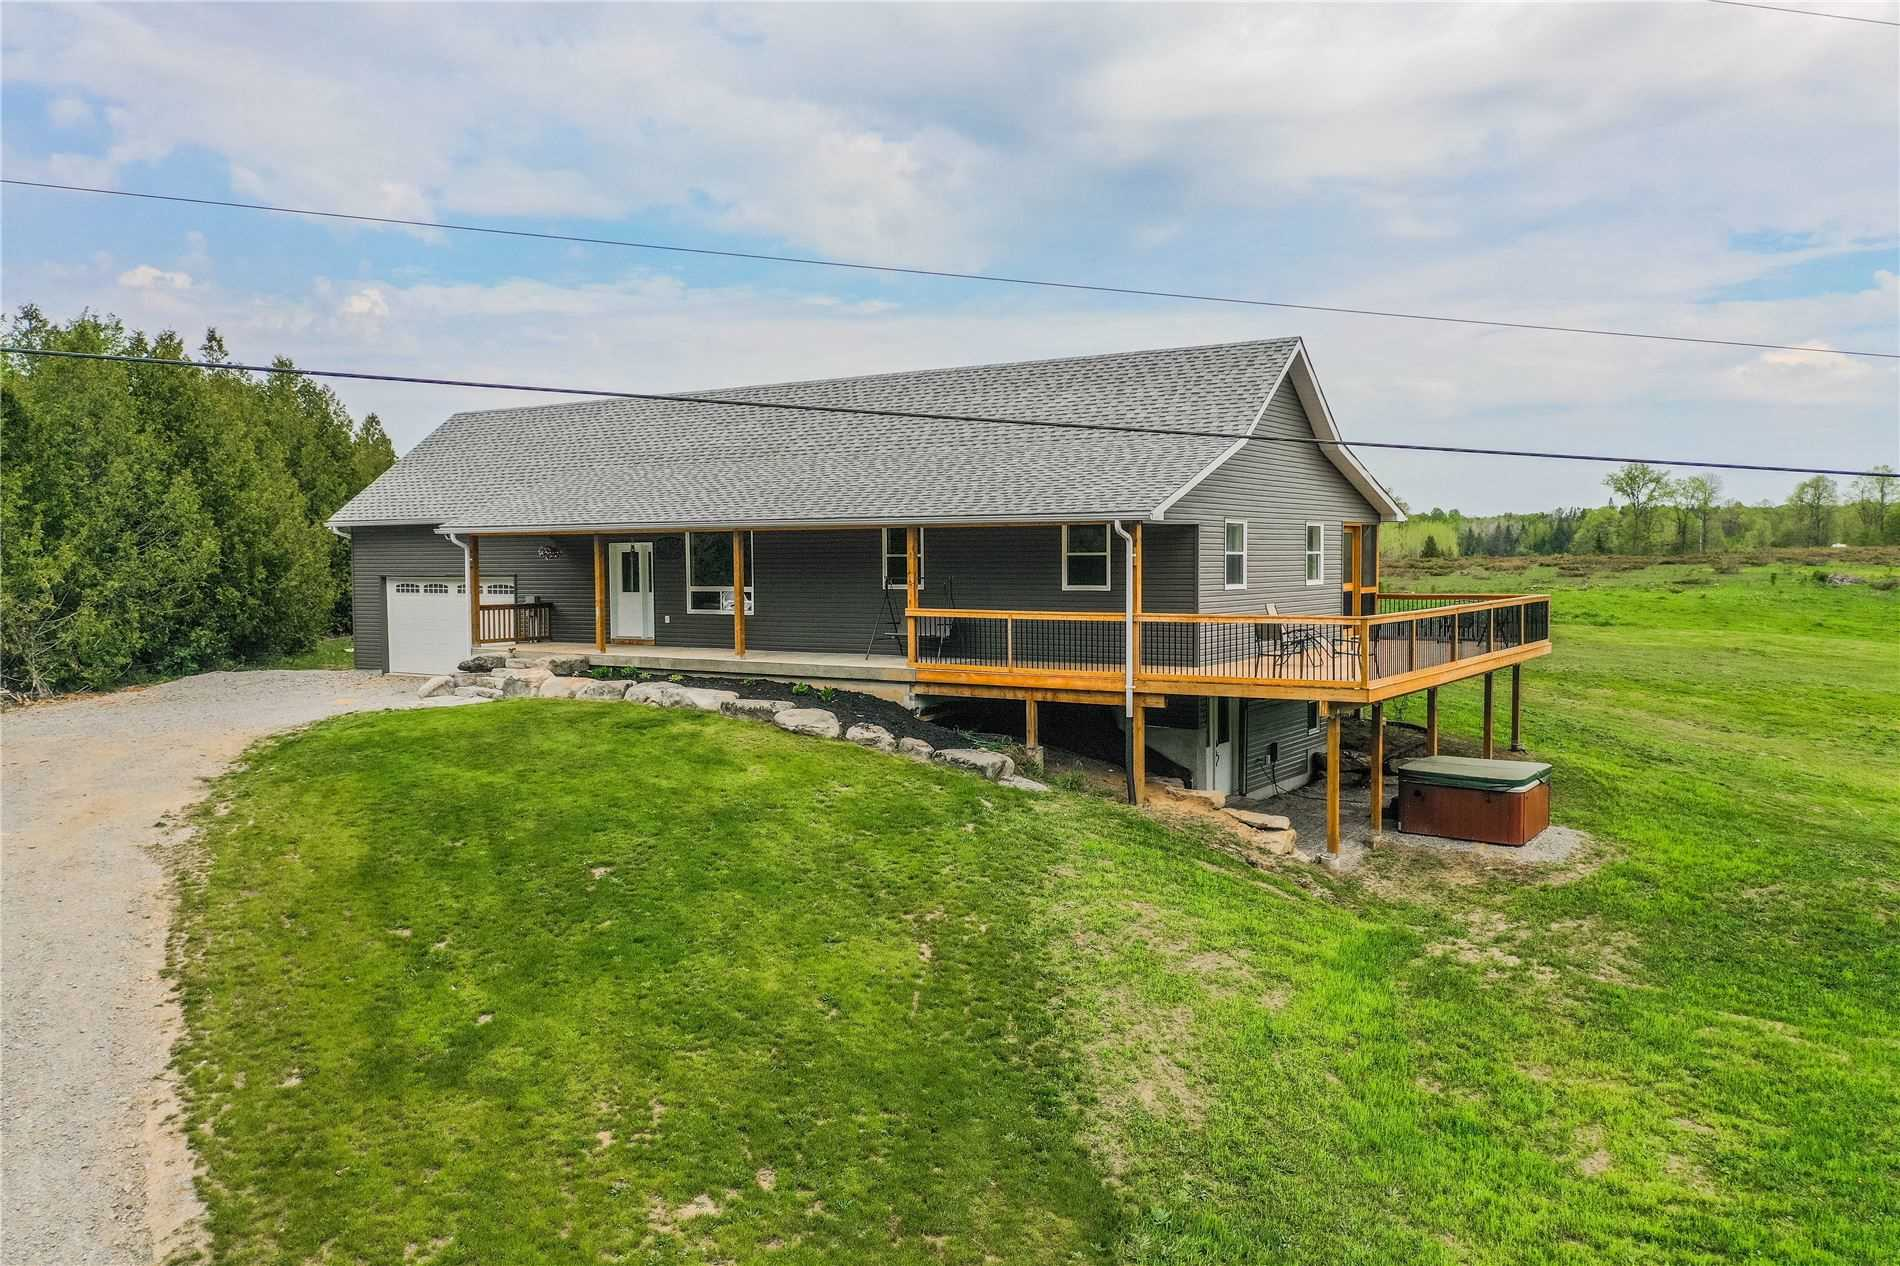 401 Digbylaxton Boundary Rd, Kawartha Lakes, Ontario K0M2B0, 3 Bedrooms Bedrooms, ,4 BathroomsBathrooms,Detached,For Sale,Digbylaxton Boundary,X5273193